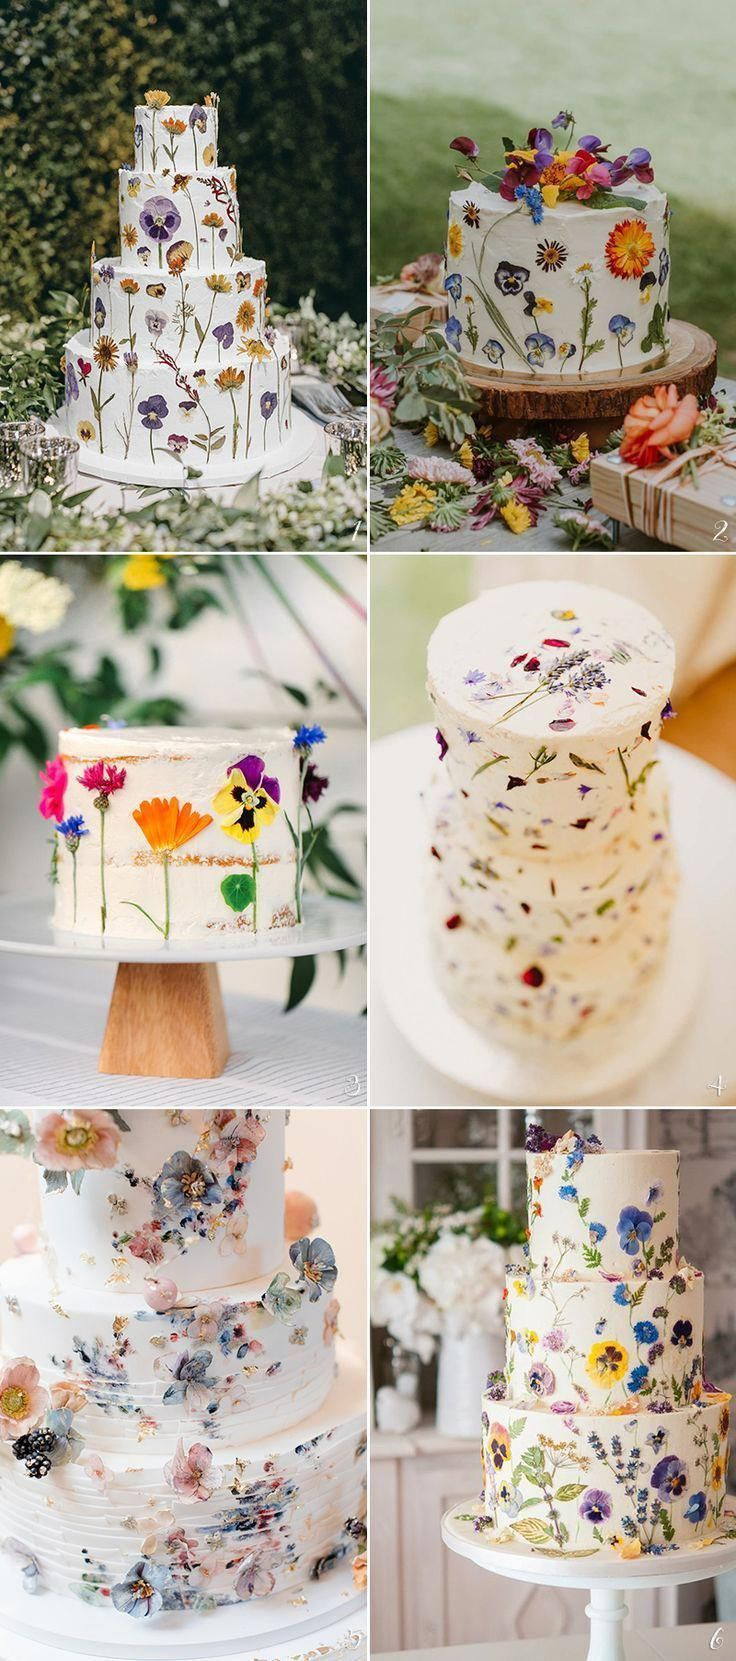 The ultimate guide to decorating your white wedding cake 10 k country chocolat mariage cake cake country cake recipes cake simple cake vintage